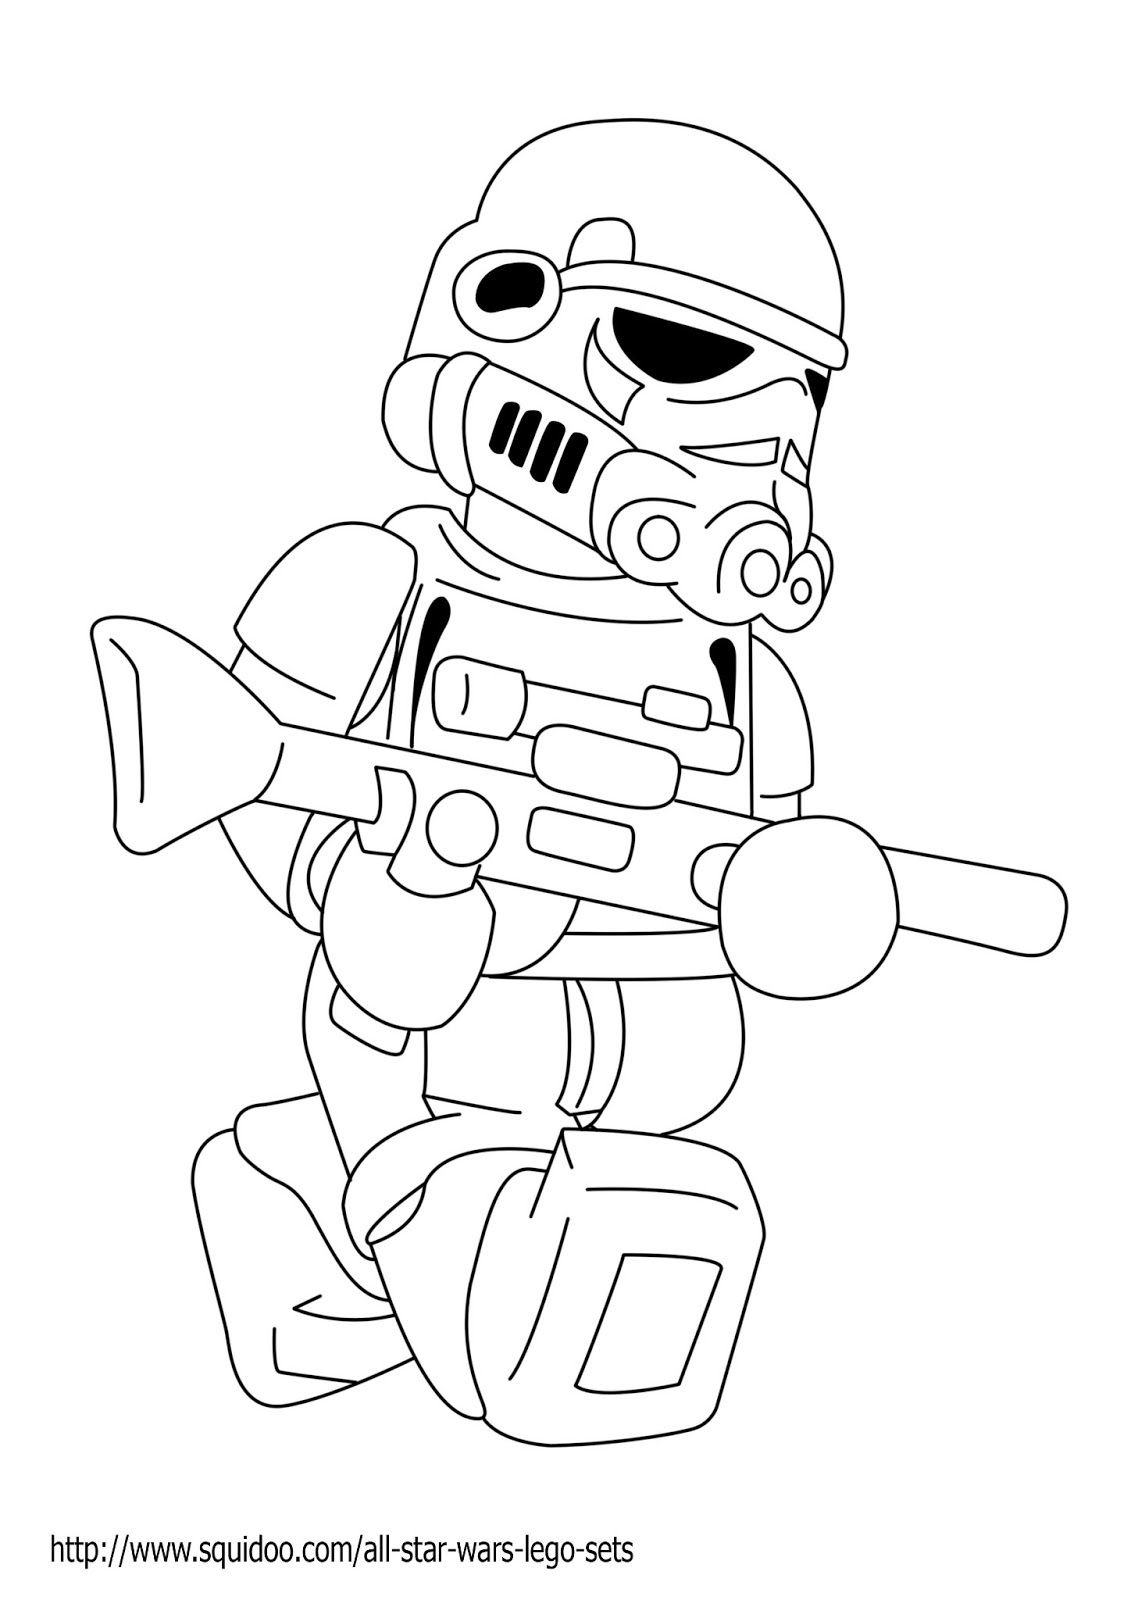 Star wars coloring pages stormtrooper lego | Kid crafts | Pinterest ...